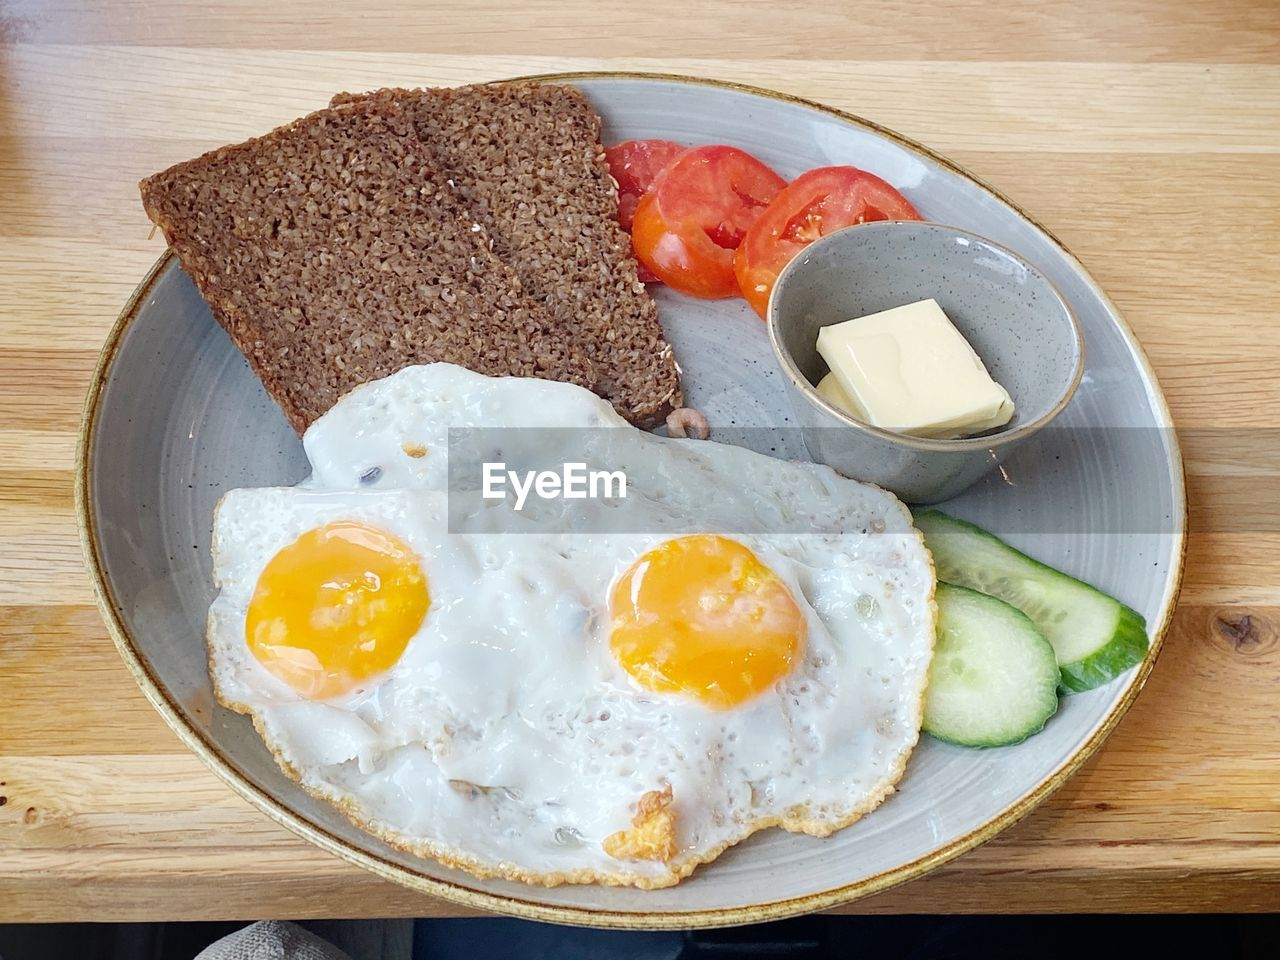 egg, food, food and drink, fried egg, breakfast, fried, ready-to-eat, meal, healthy eating, table, freshness, bread, still life, indoors, wellbeing, no people, egg yolk, directly above, high angle view, wood - material, sunny side up